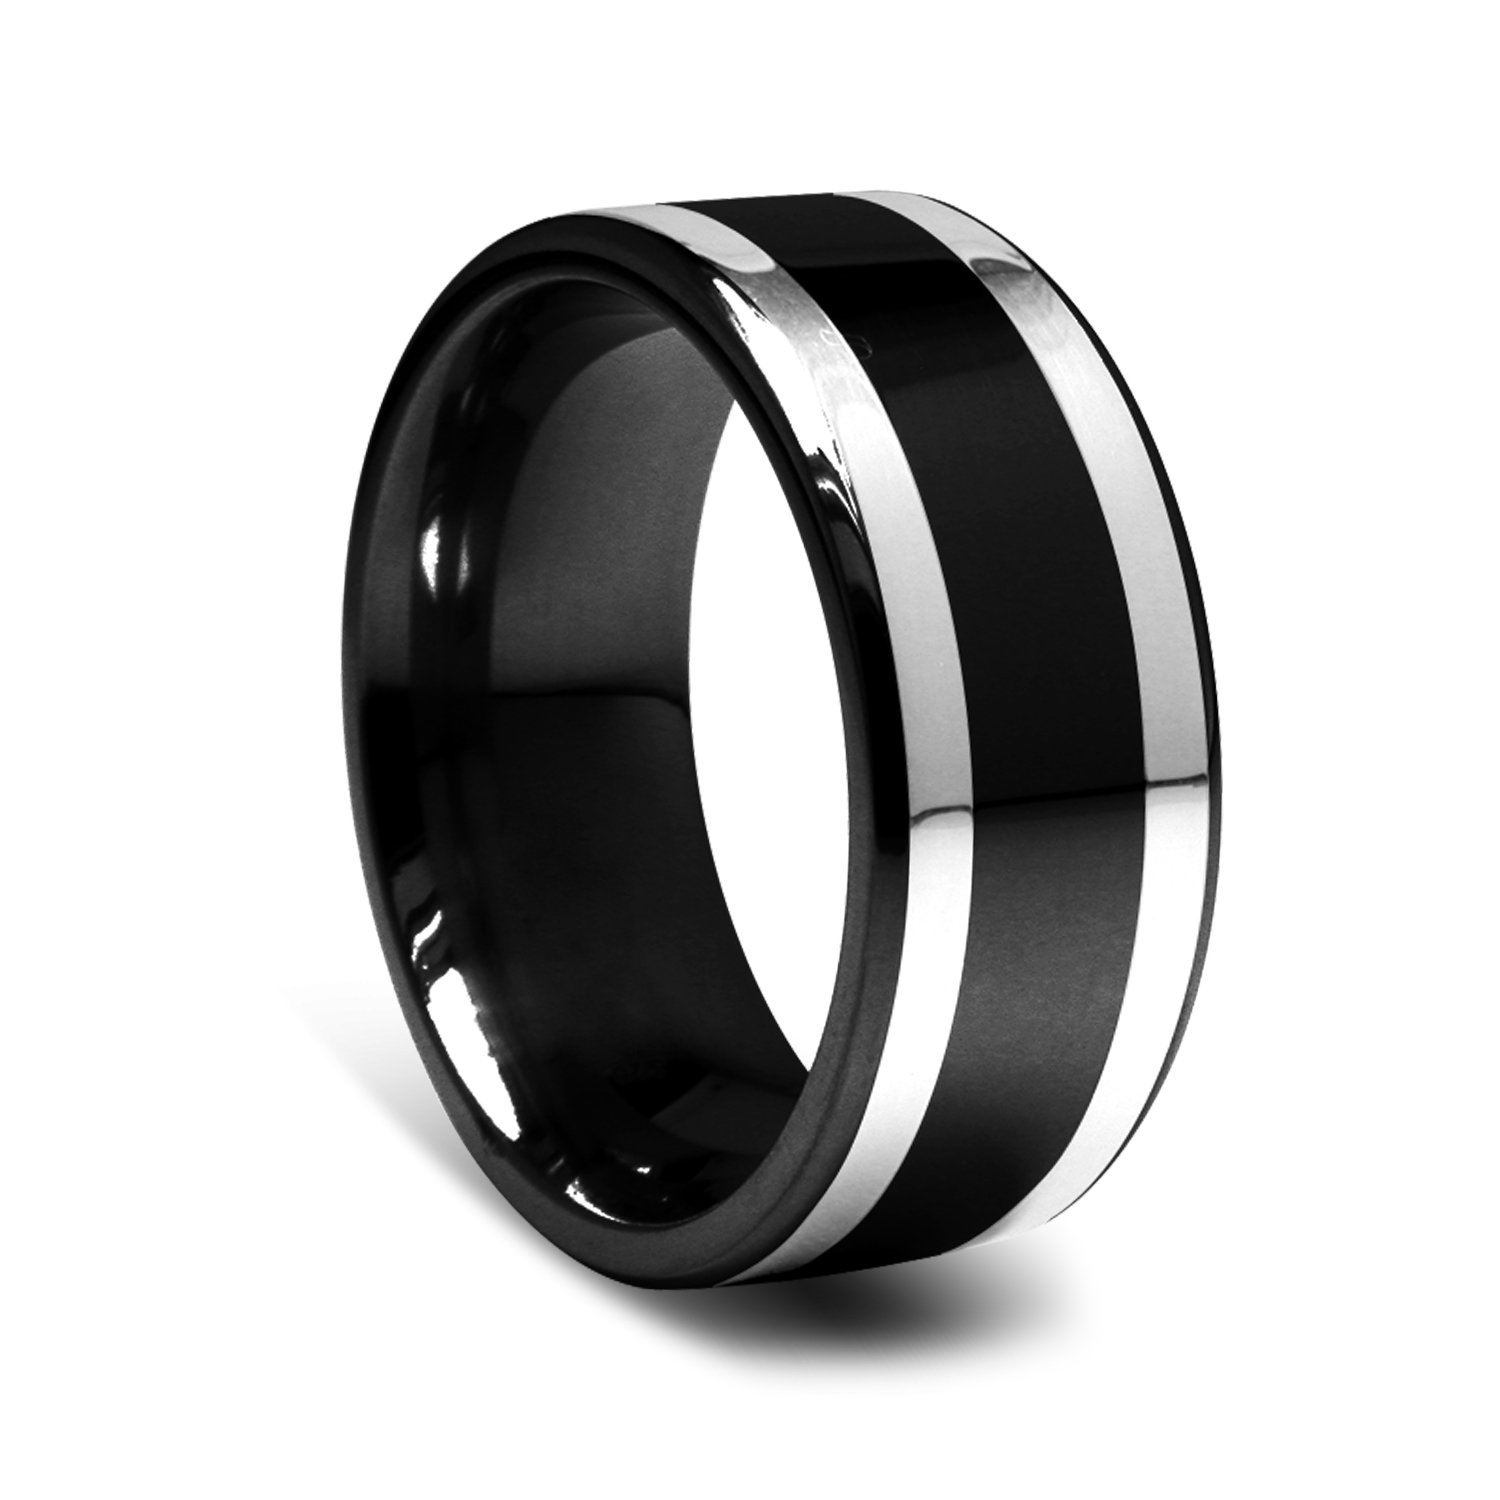 diamonds is of meaning size bands what onyx tungsten gold titanium rose mens engagement with rings ring men diamond for amazon wedding black her full